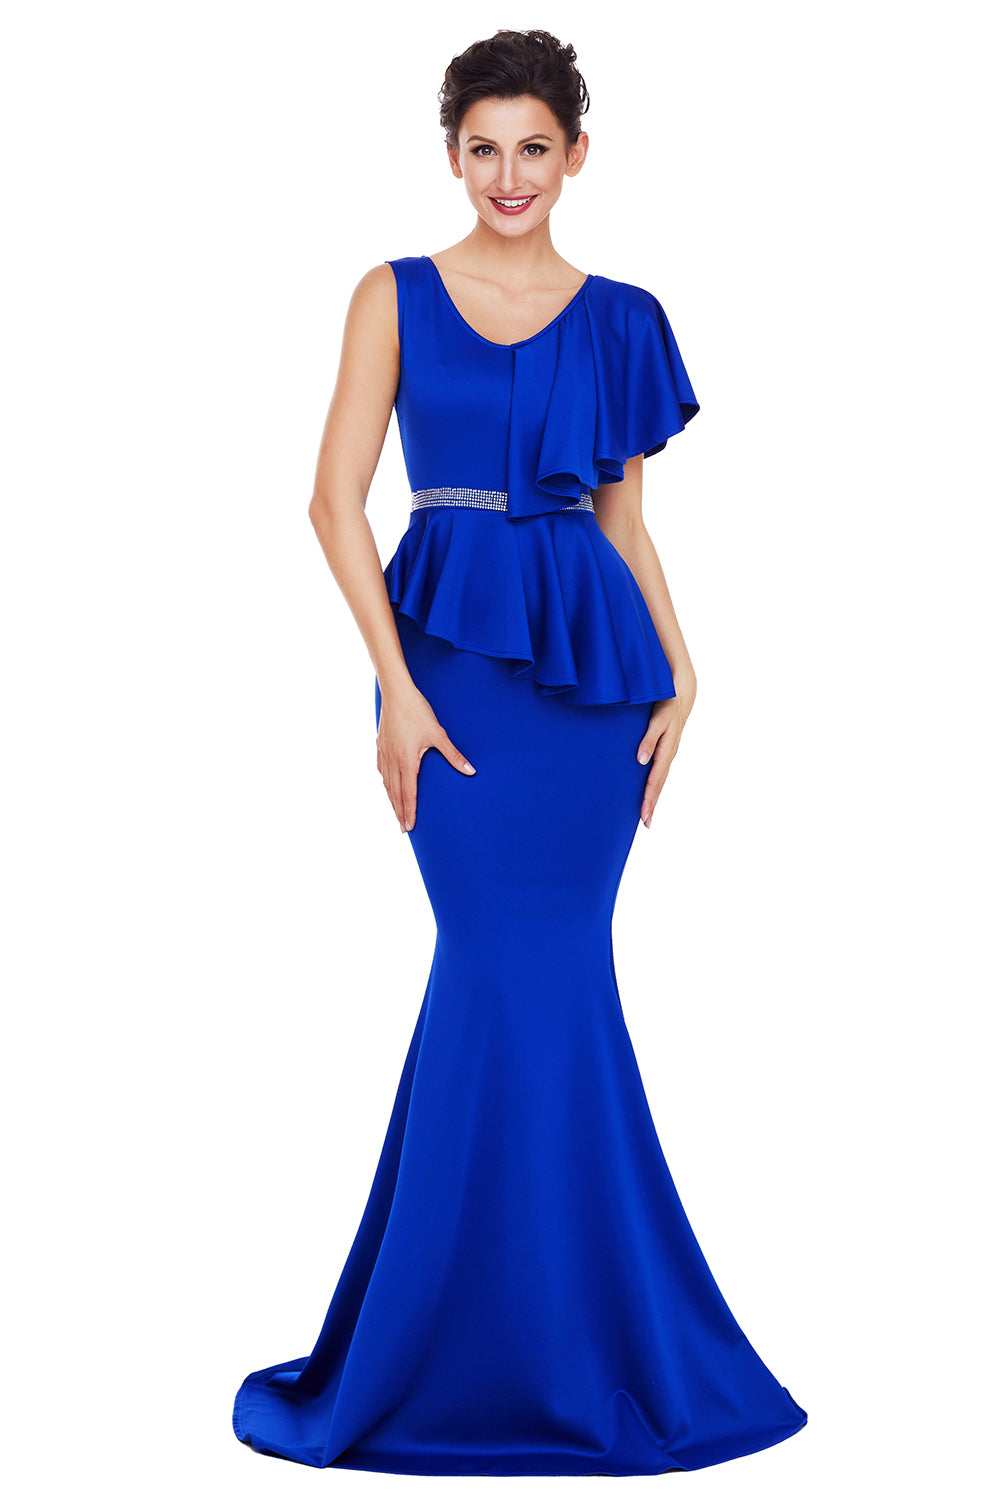 Her Fashion Royal Blue Ruffle Peplum Mermaid Prom Party Dress